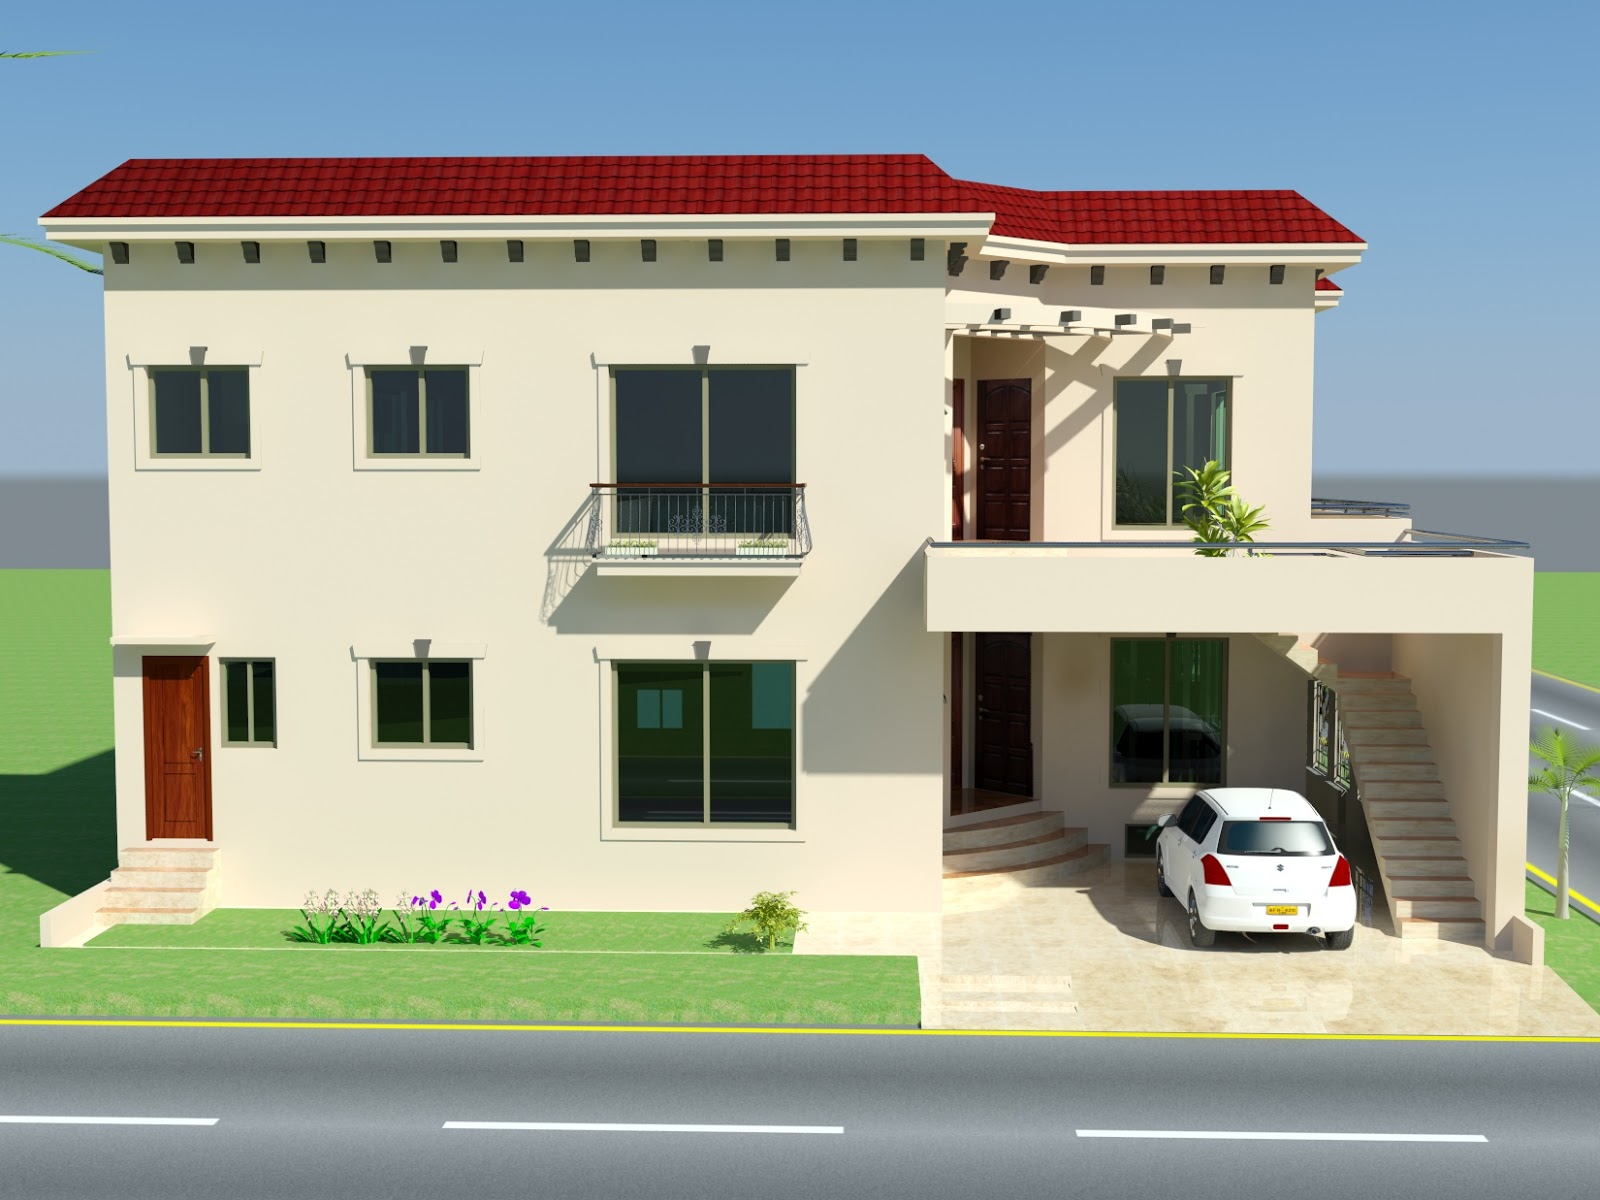 ... ,Corner Plot, 50' X 50' , 3D Front Elevation, Rawalpindi , Pakistan